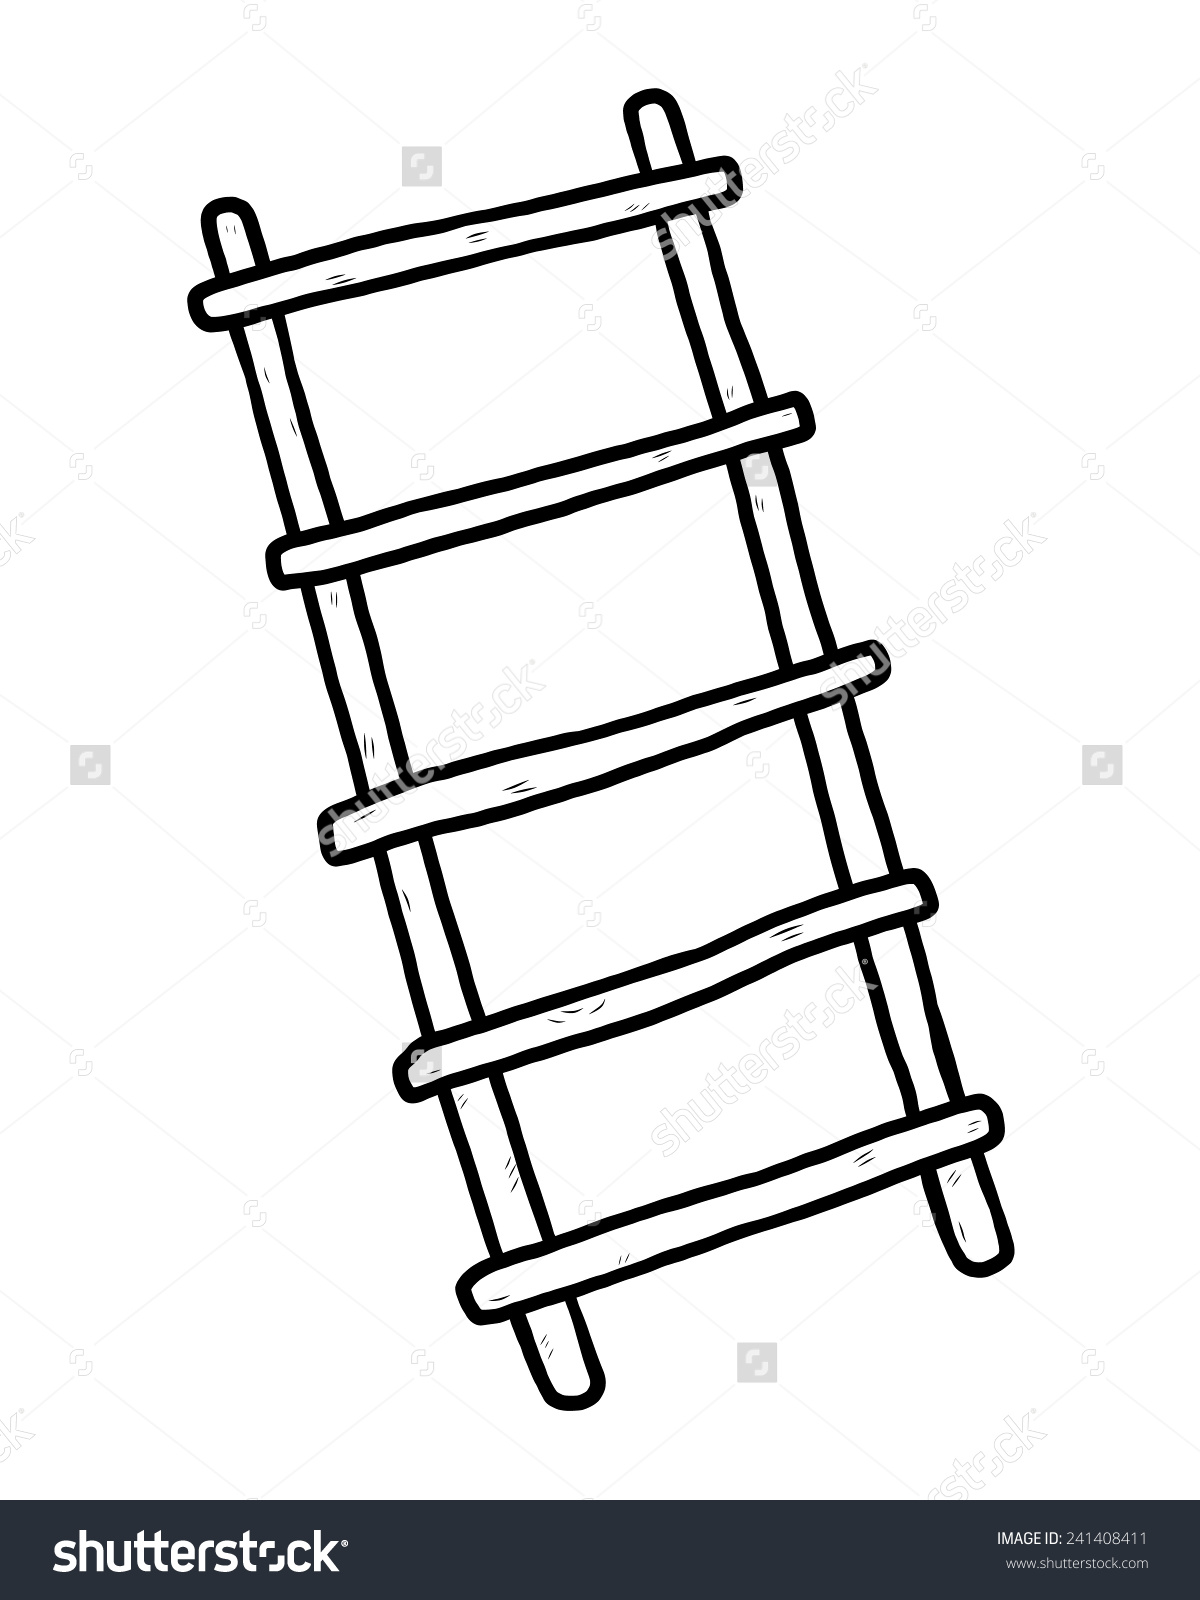 the best free ladder drawing images download from 50 free drawings Ladder Logic Symbols 1200x1600 ladder cartoon vector illustration black white stock and hand